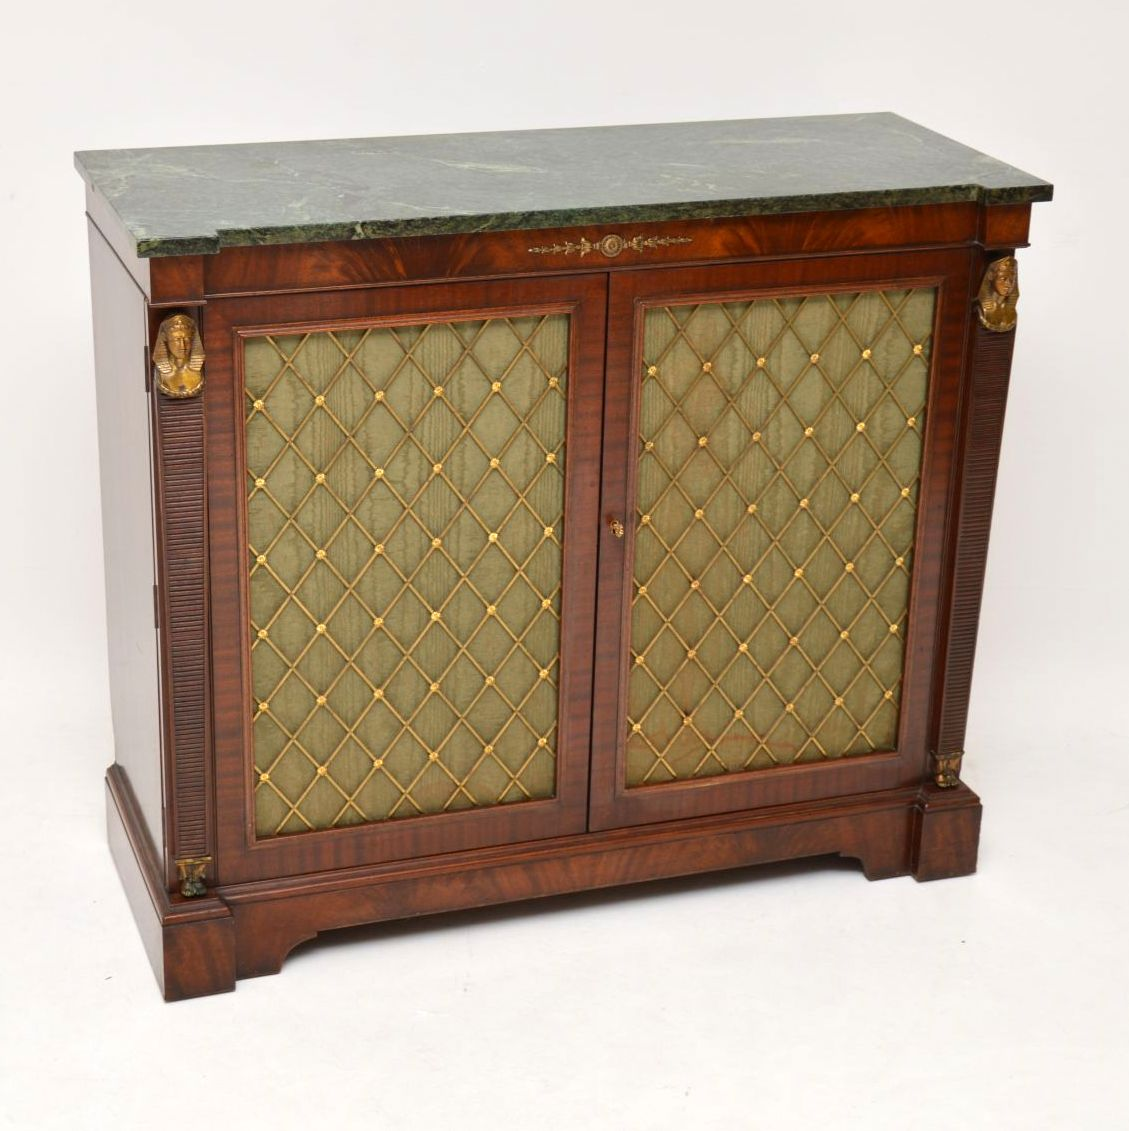 Antique Regency Style Mahogany Marble Top Chiffonier Sideboard